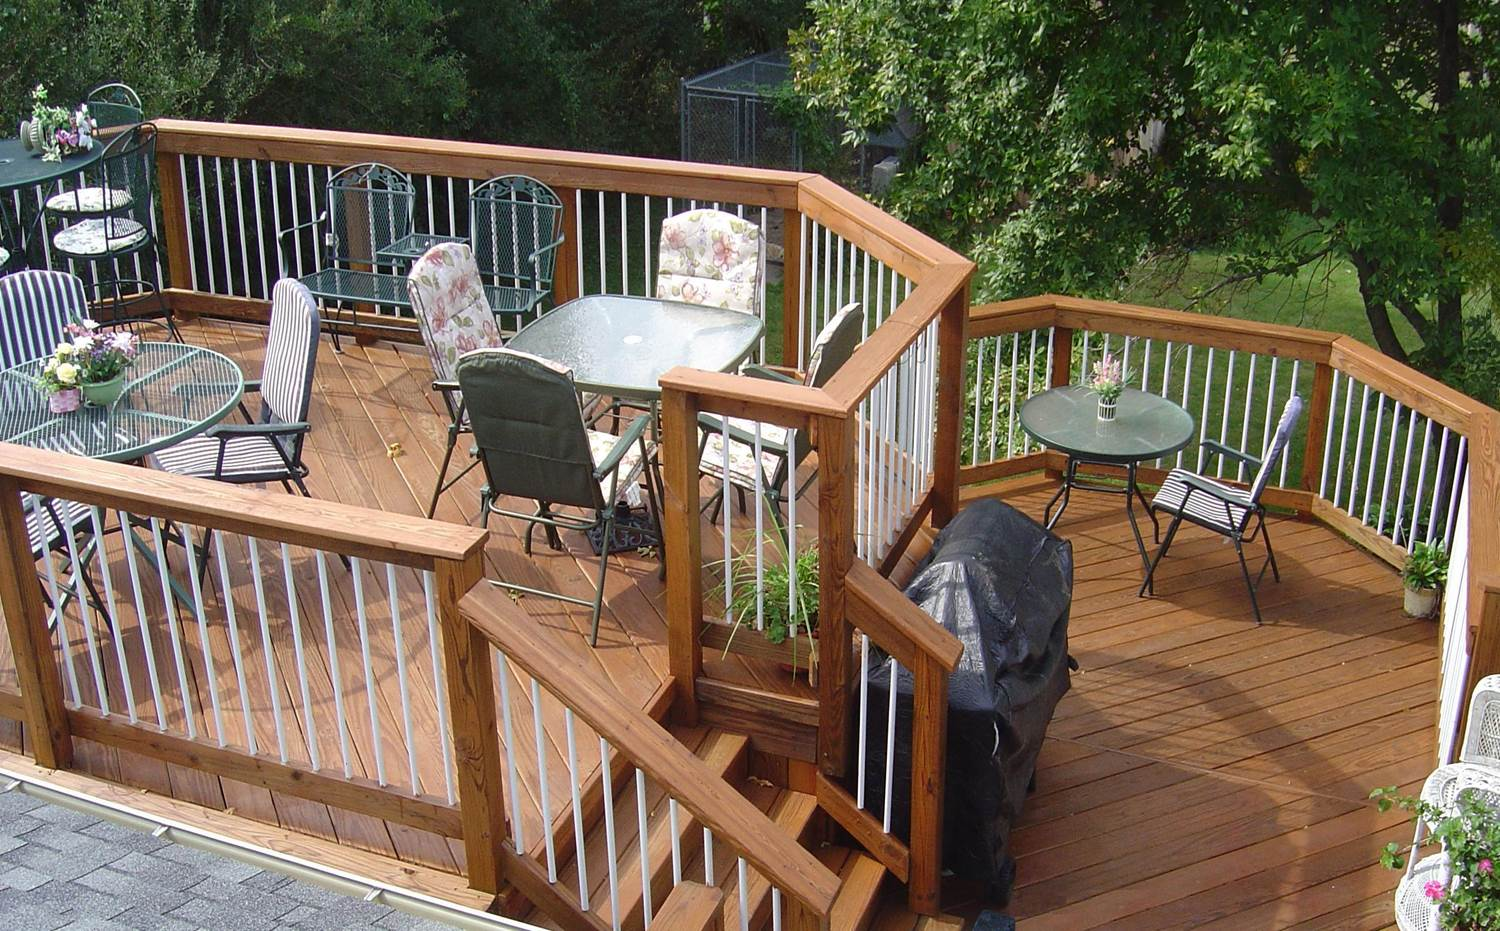 Archadeck of raleigh durham the greater triangle answers 10 top archadeck of raleigh durham the greater triangle answers 10 top questions about sealing and staining pressure treated wood decks baanklon Gallery